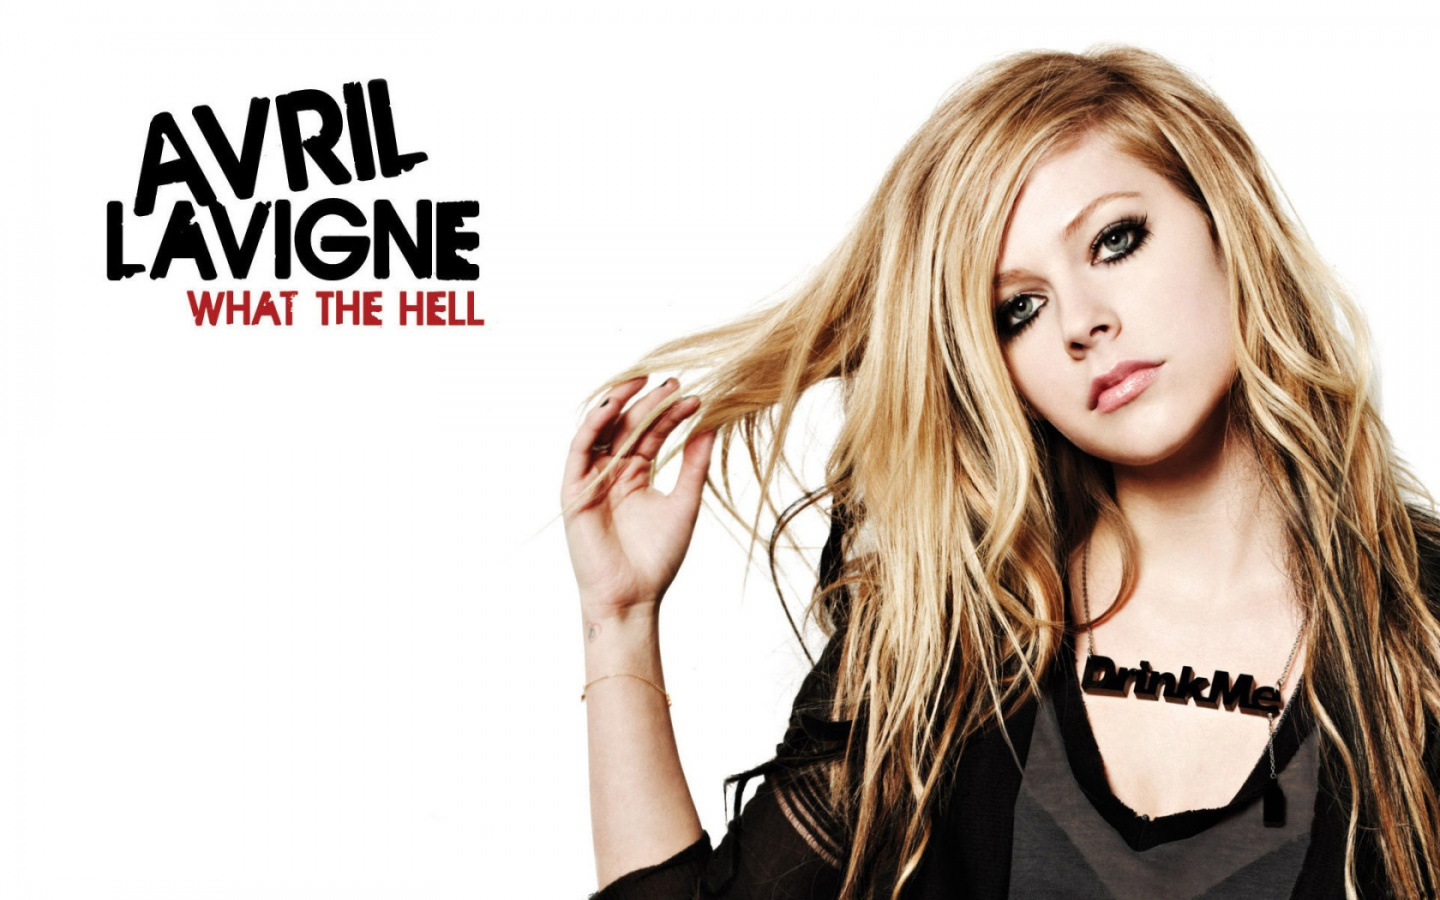 Avril Lavigne - What The Hell | 1440 x 900 | Download | Close